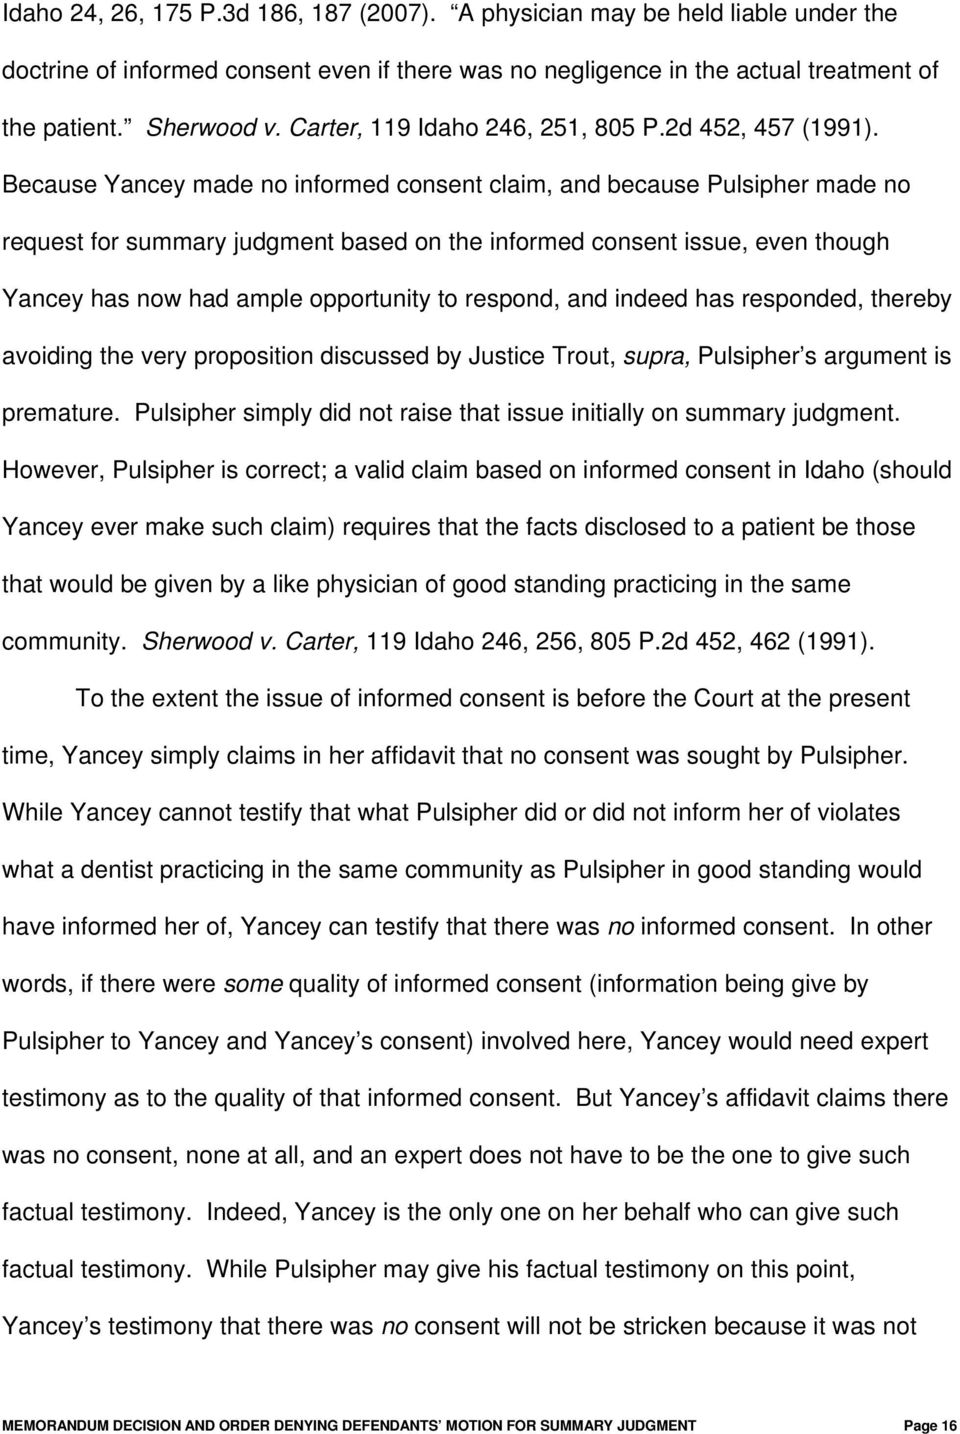 Because Yancey made no informed consent claim, and because Pulsipher made no request for summary judgment based on the informed consent issue, even though Yancey has now had ample opportunity to